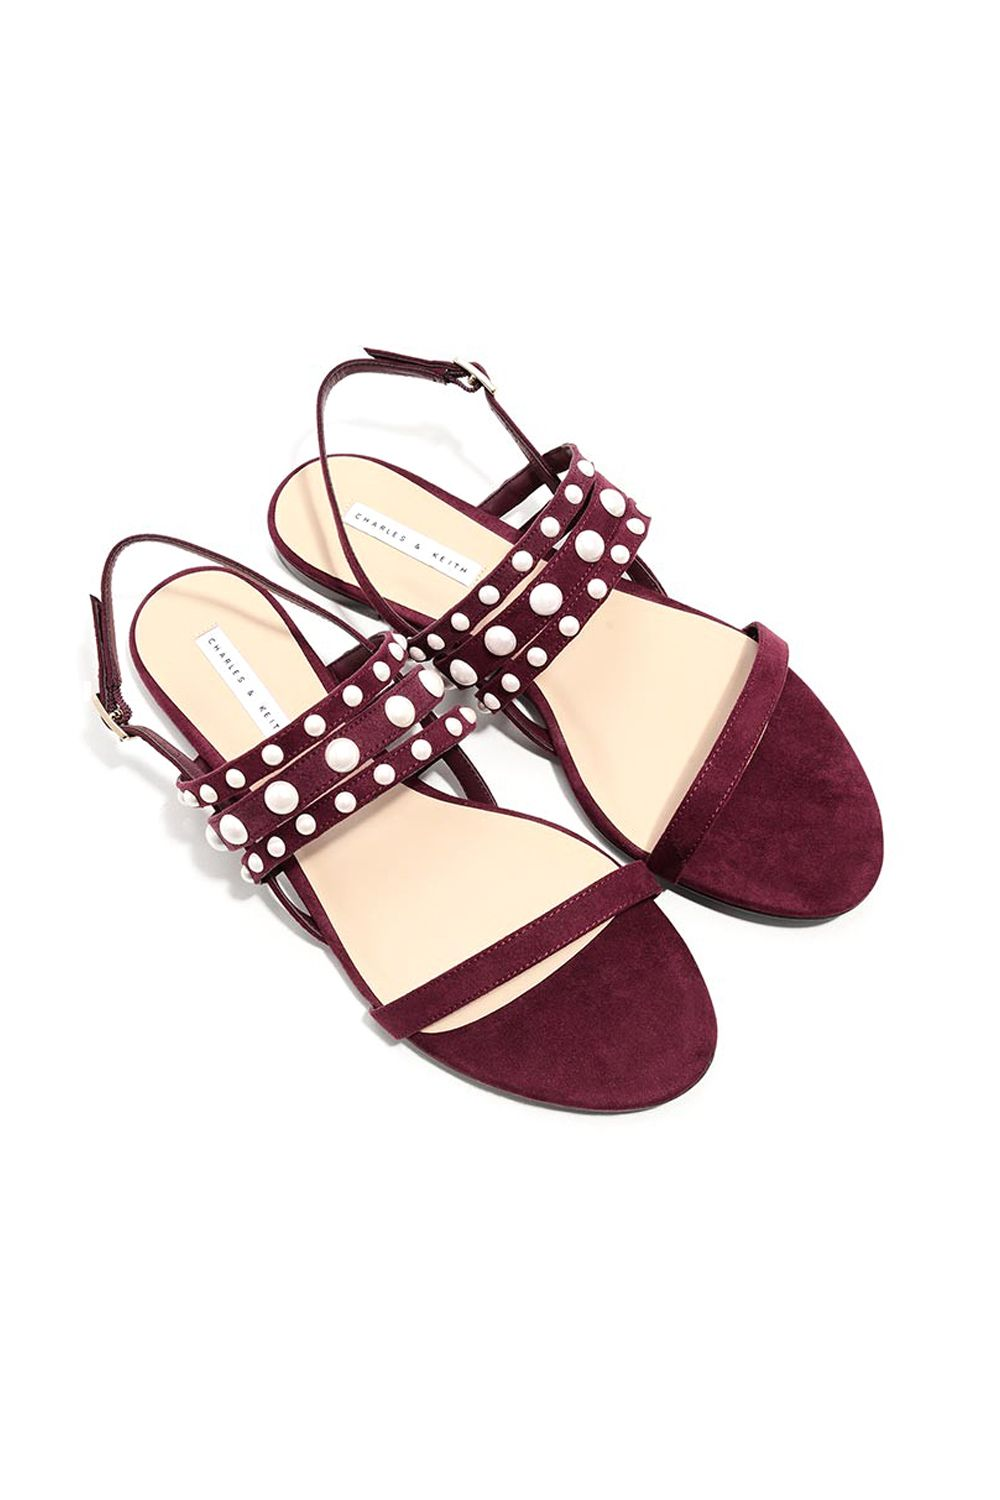 "<p>&nbsp&#x3B;At a most un-Chanel price.&nbsp&#x3B;</p><p>$39, <a href=""http://www.charleskeith.com/us/shoes/sandals/pearl-detail-sandals.html"" target=""_blank"" data-tracking-id=""recirc-text-link"">charleskeith.com</a>.</p>"